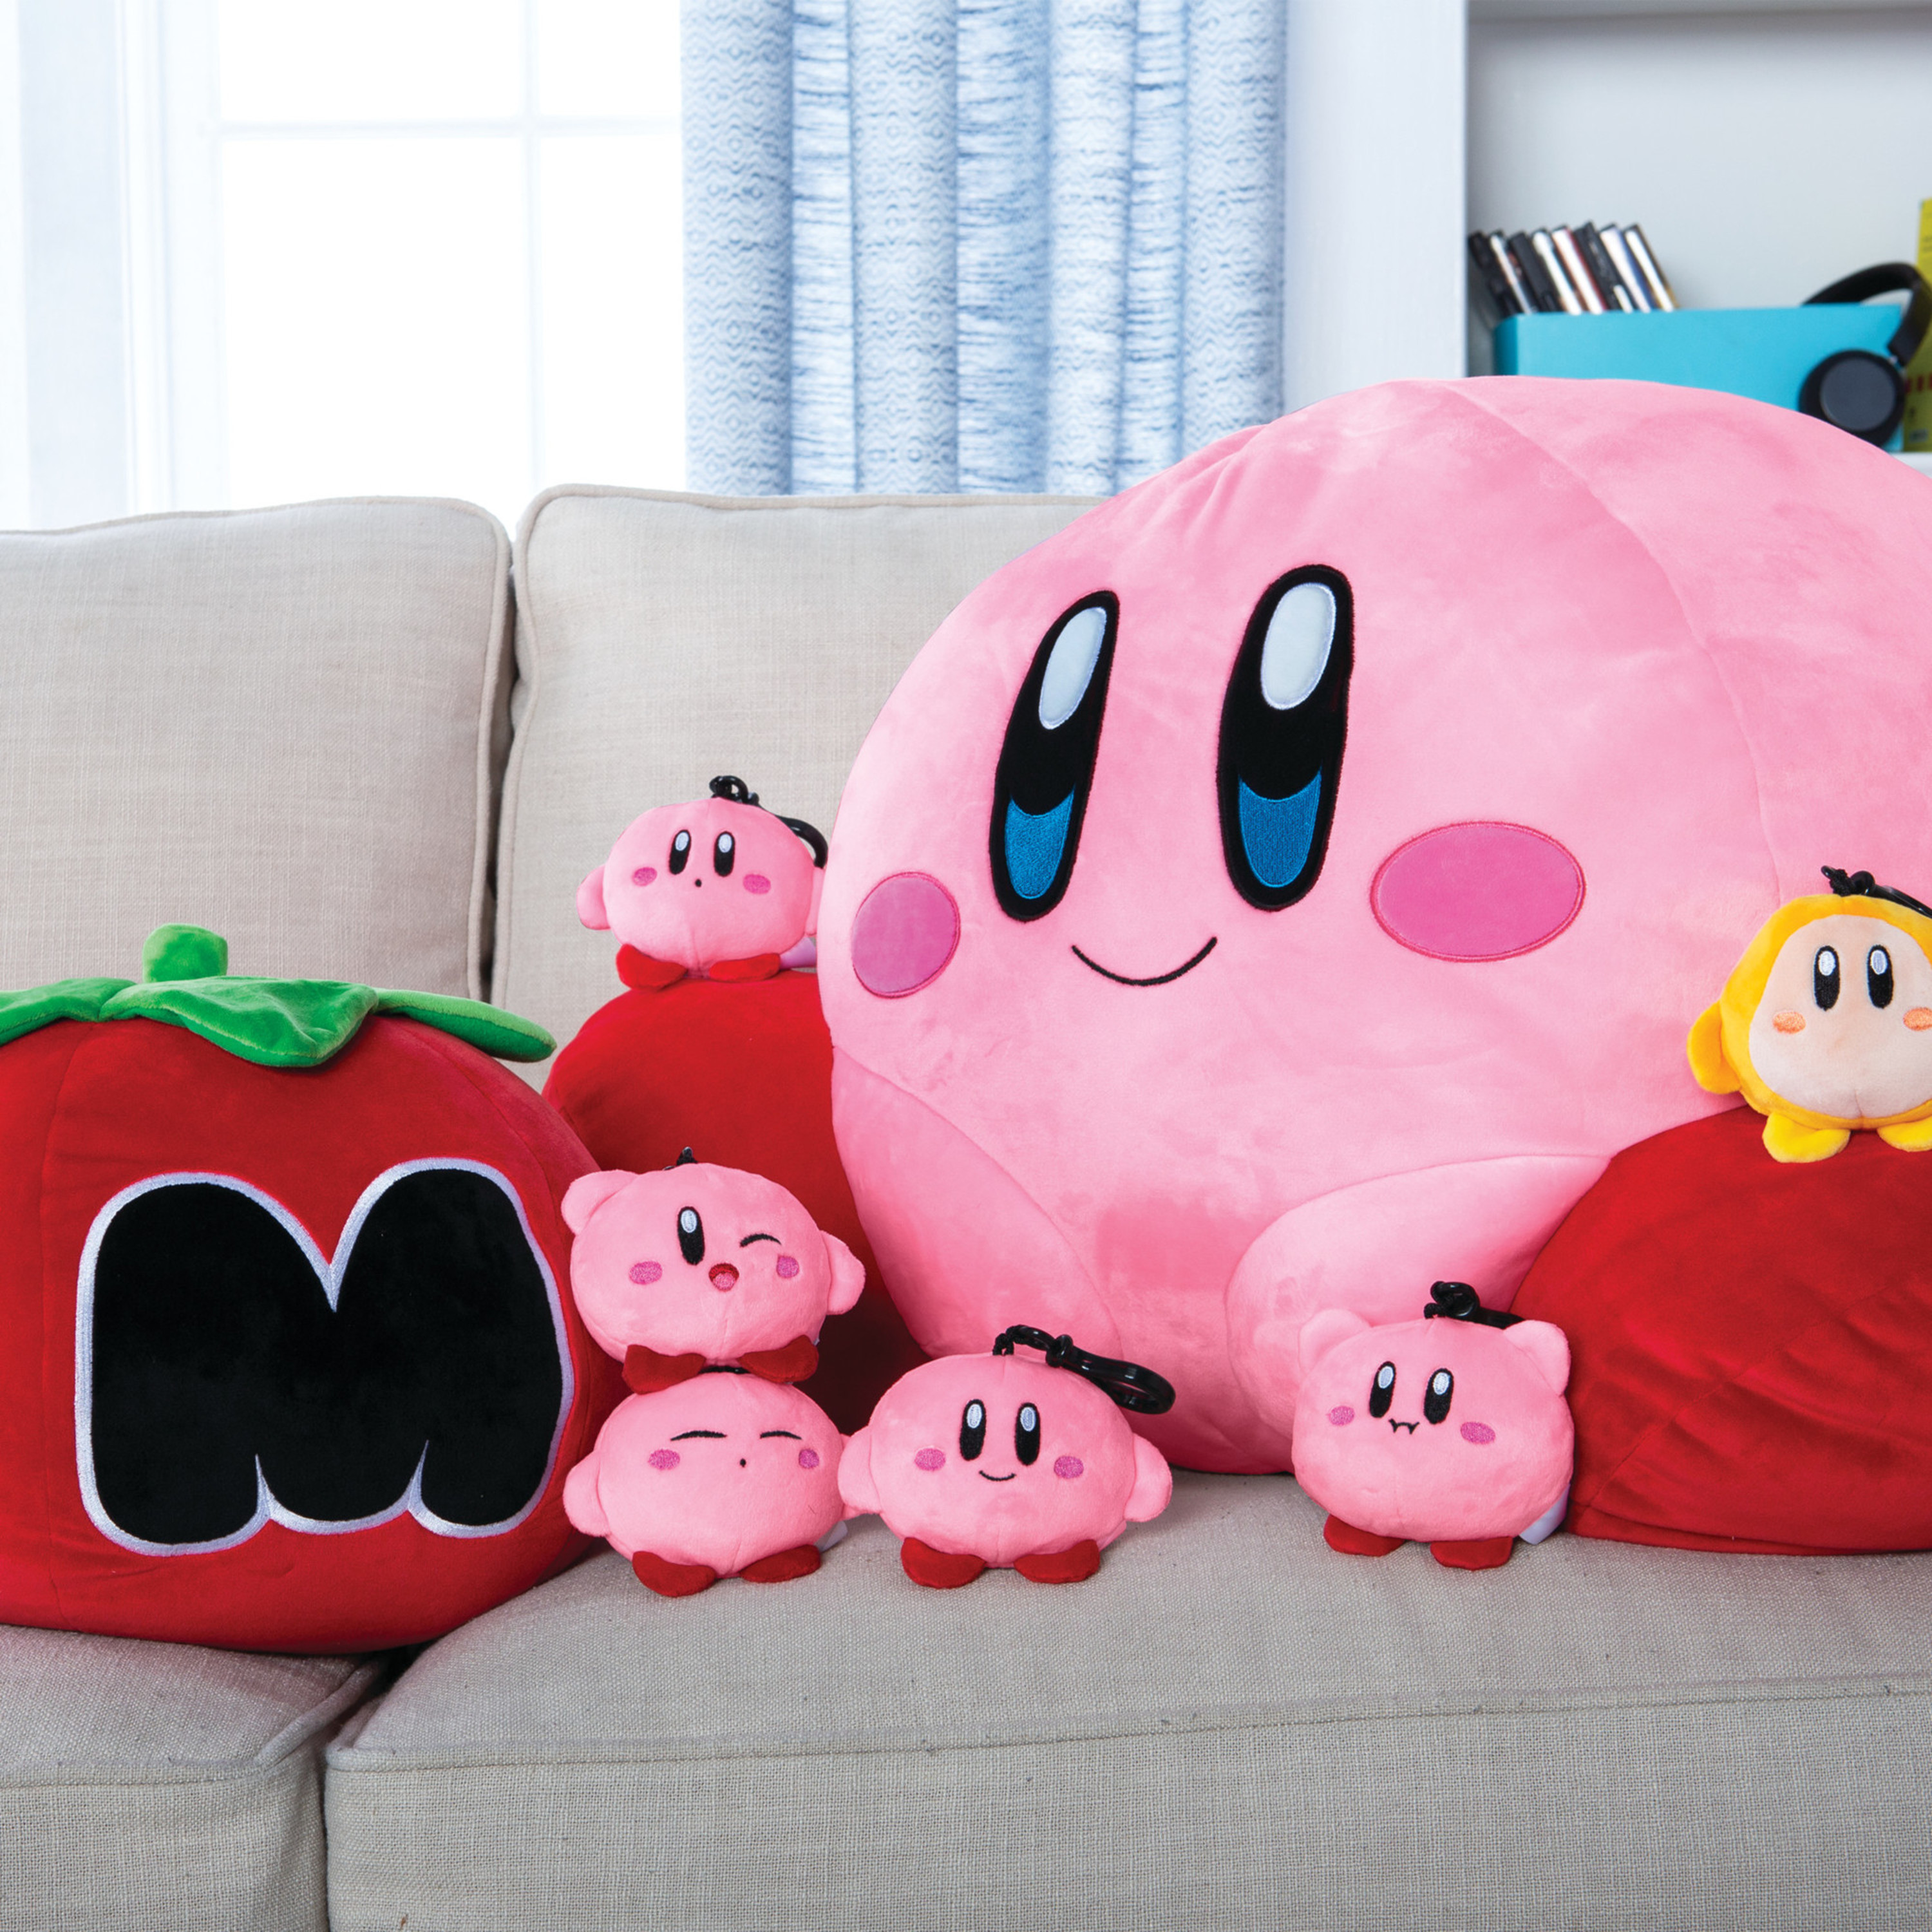 Smile Kirby of the star Mocchi-Mocchi Style Face Mascot Kirby Japan